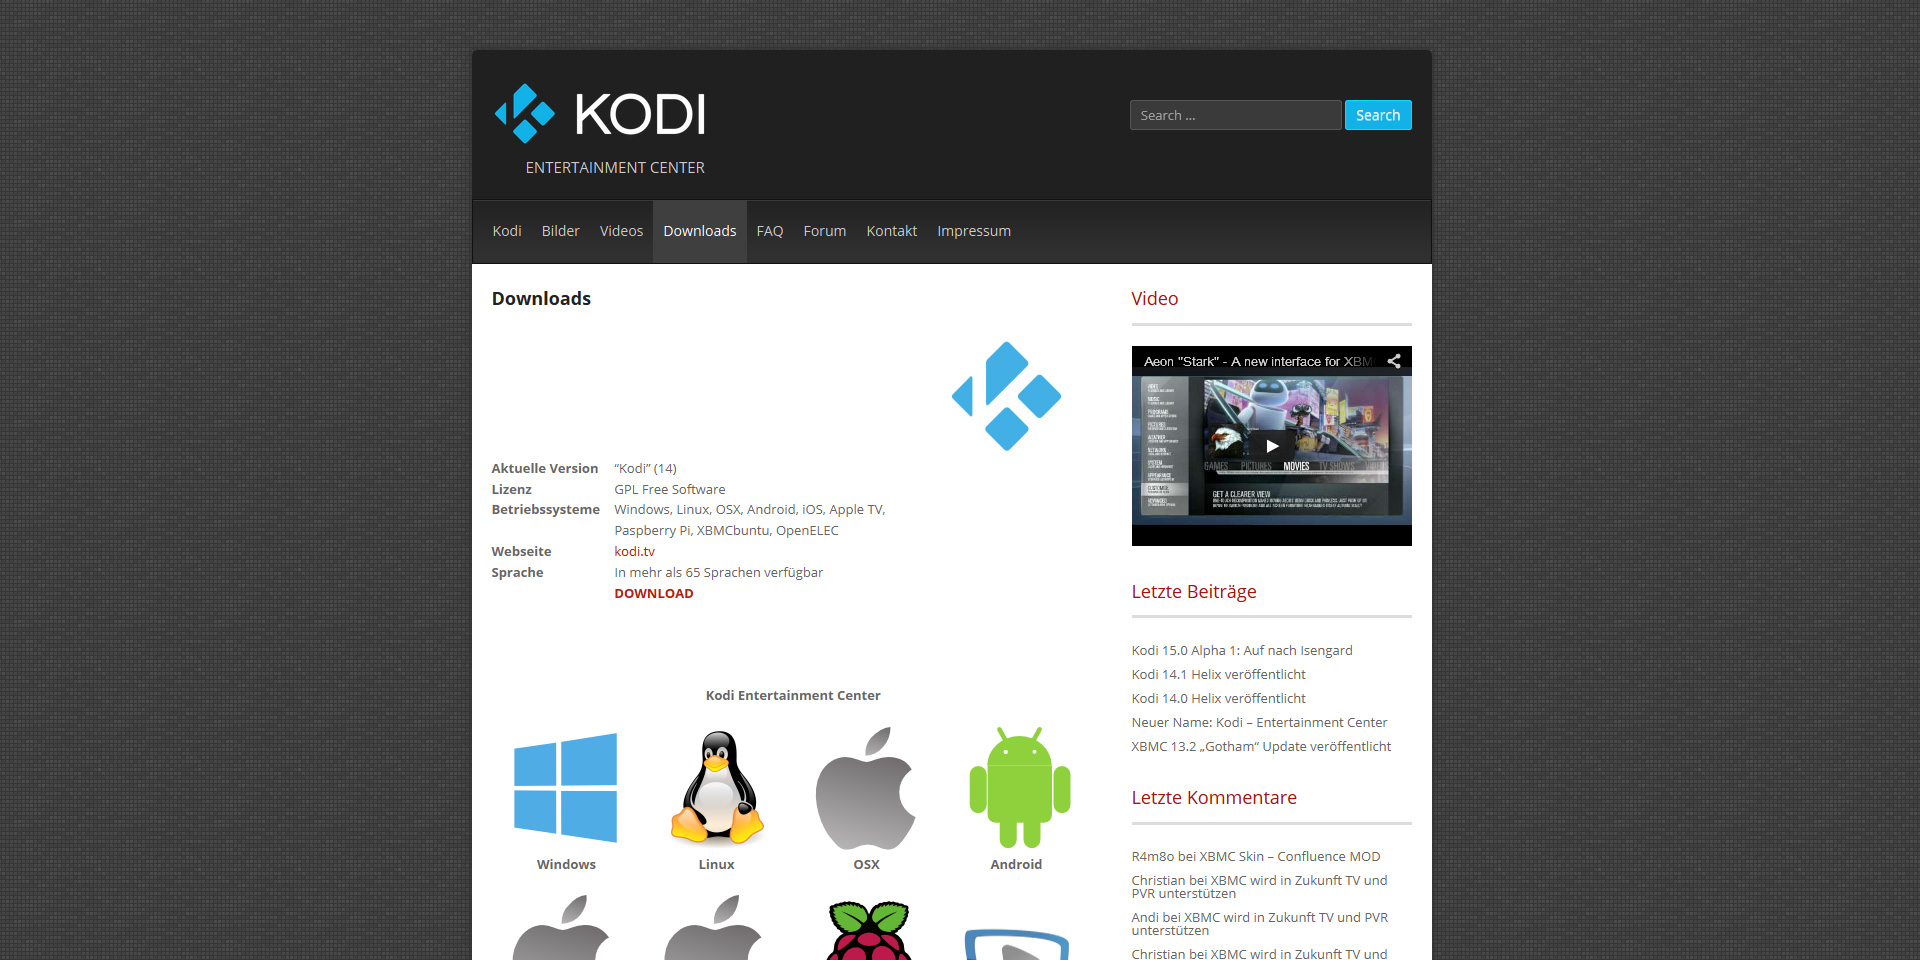 KODI-Downloads